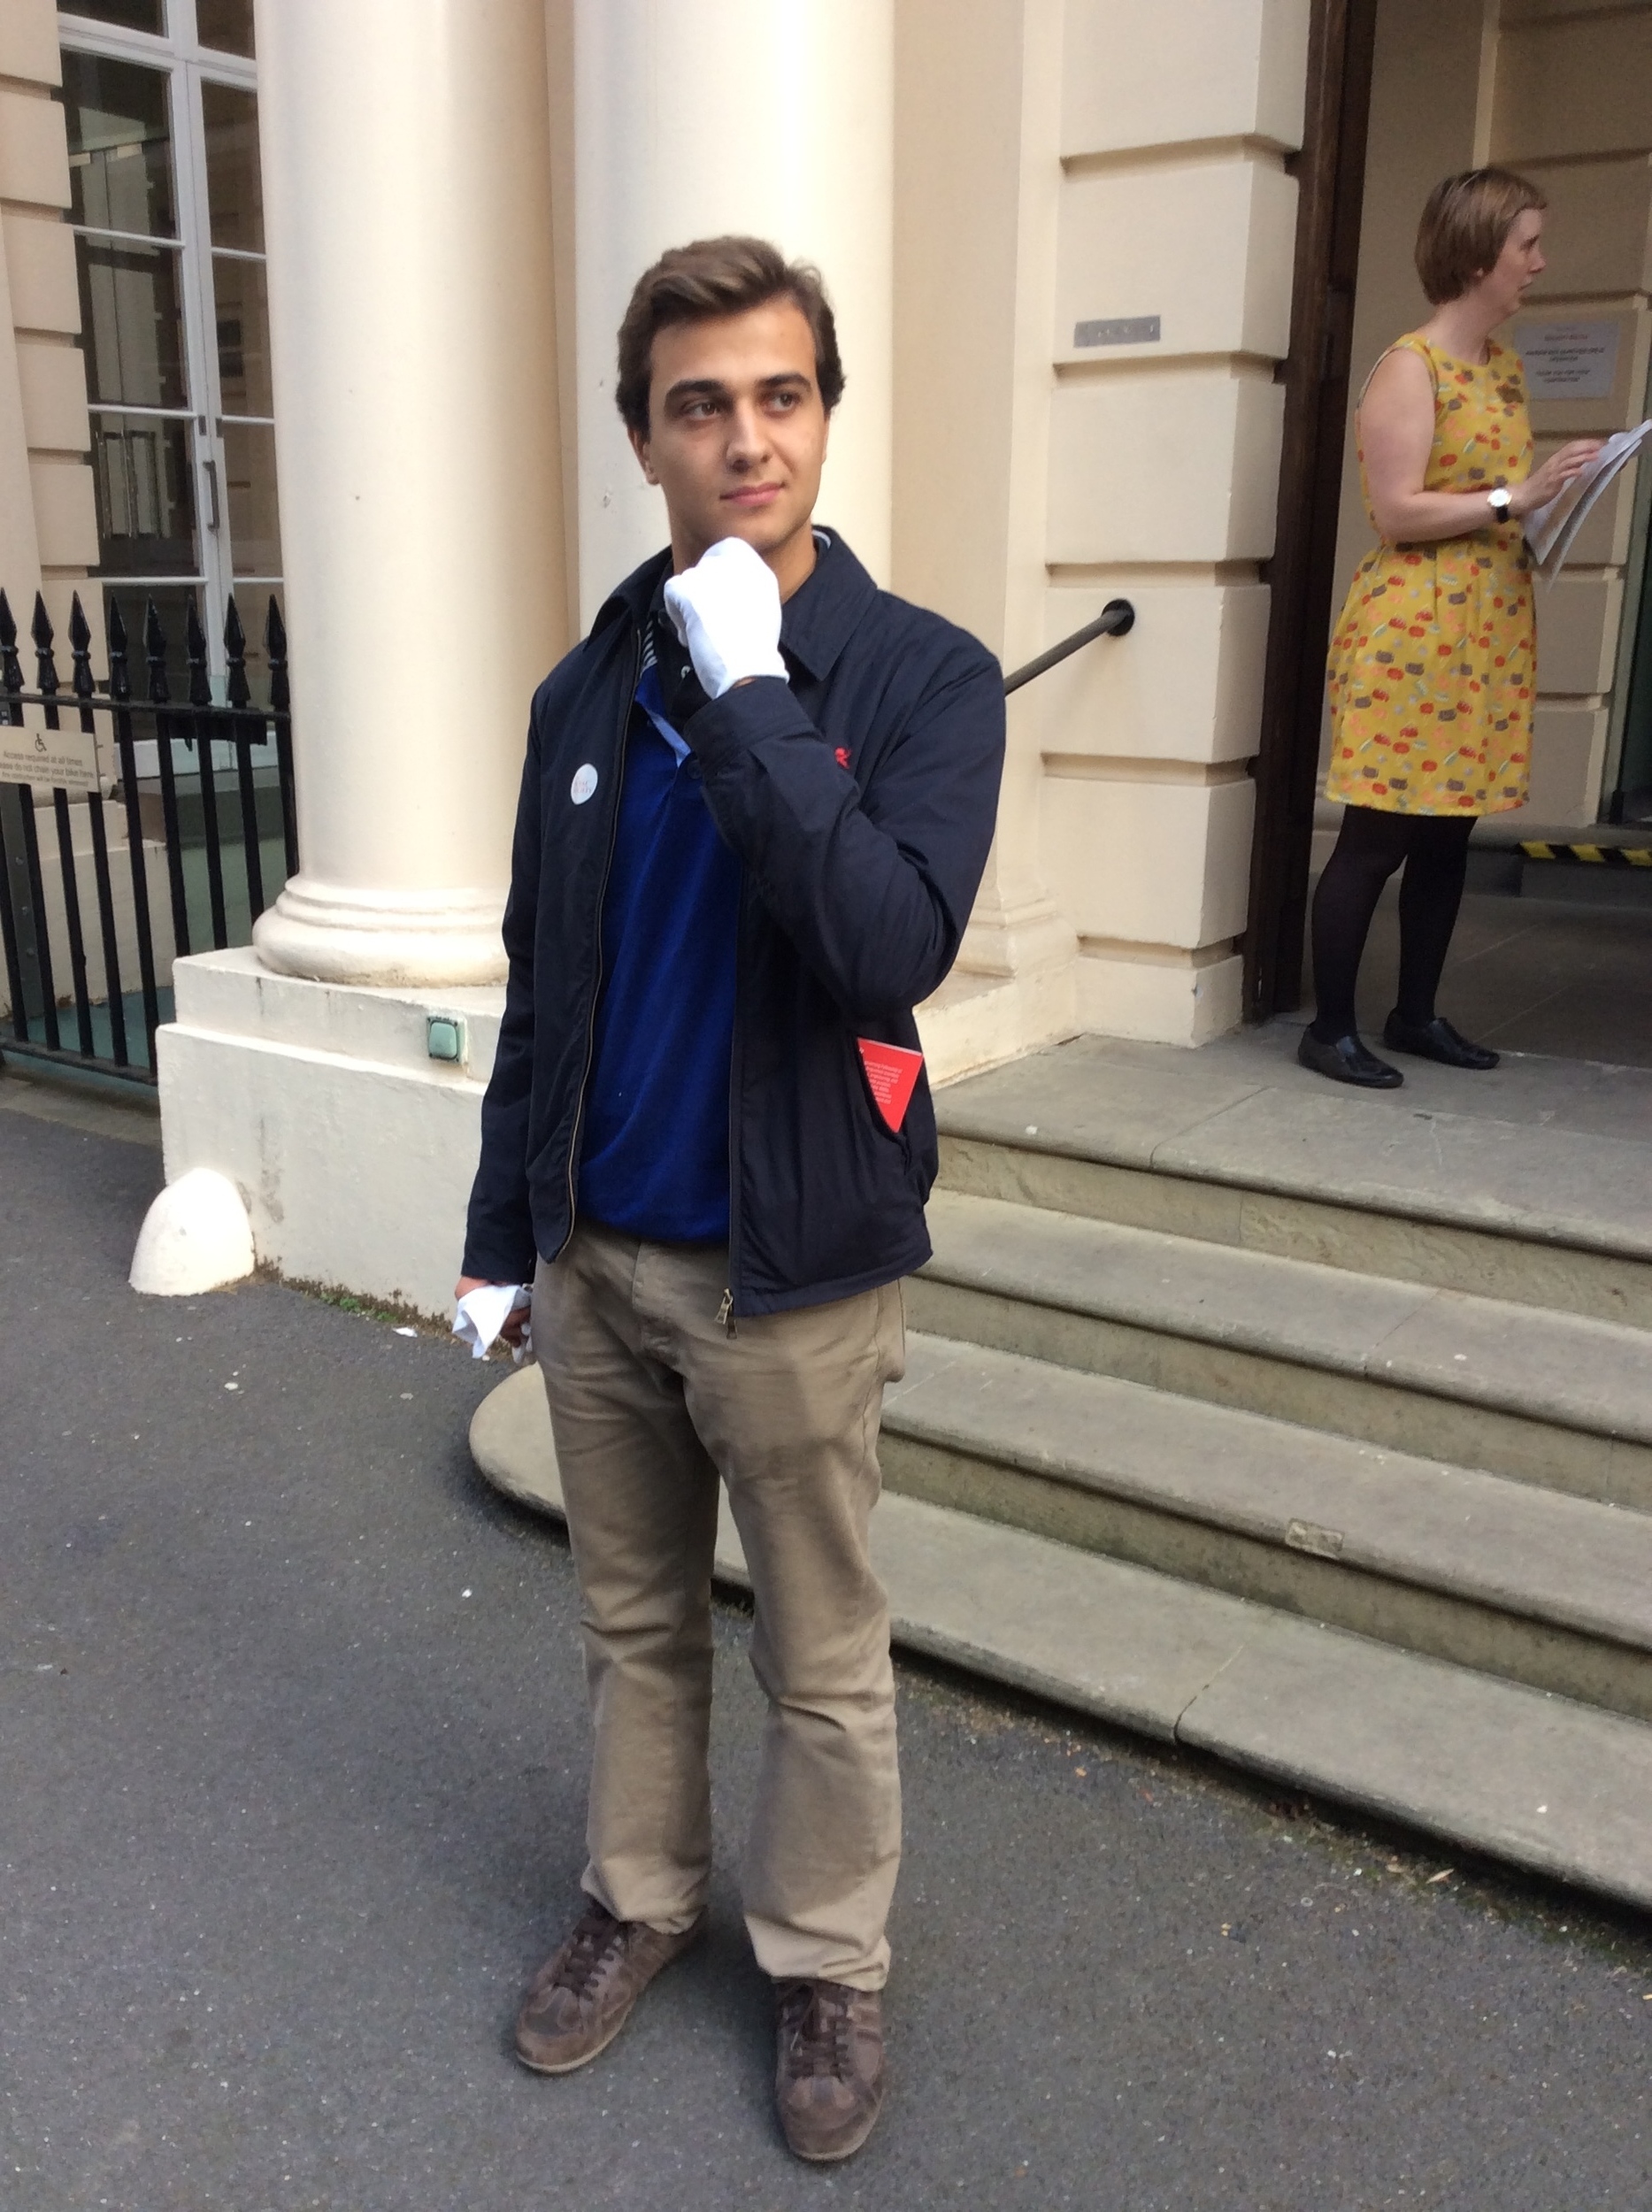 Nicolas outside the Royal Society building